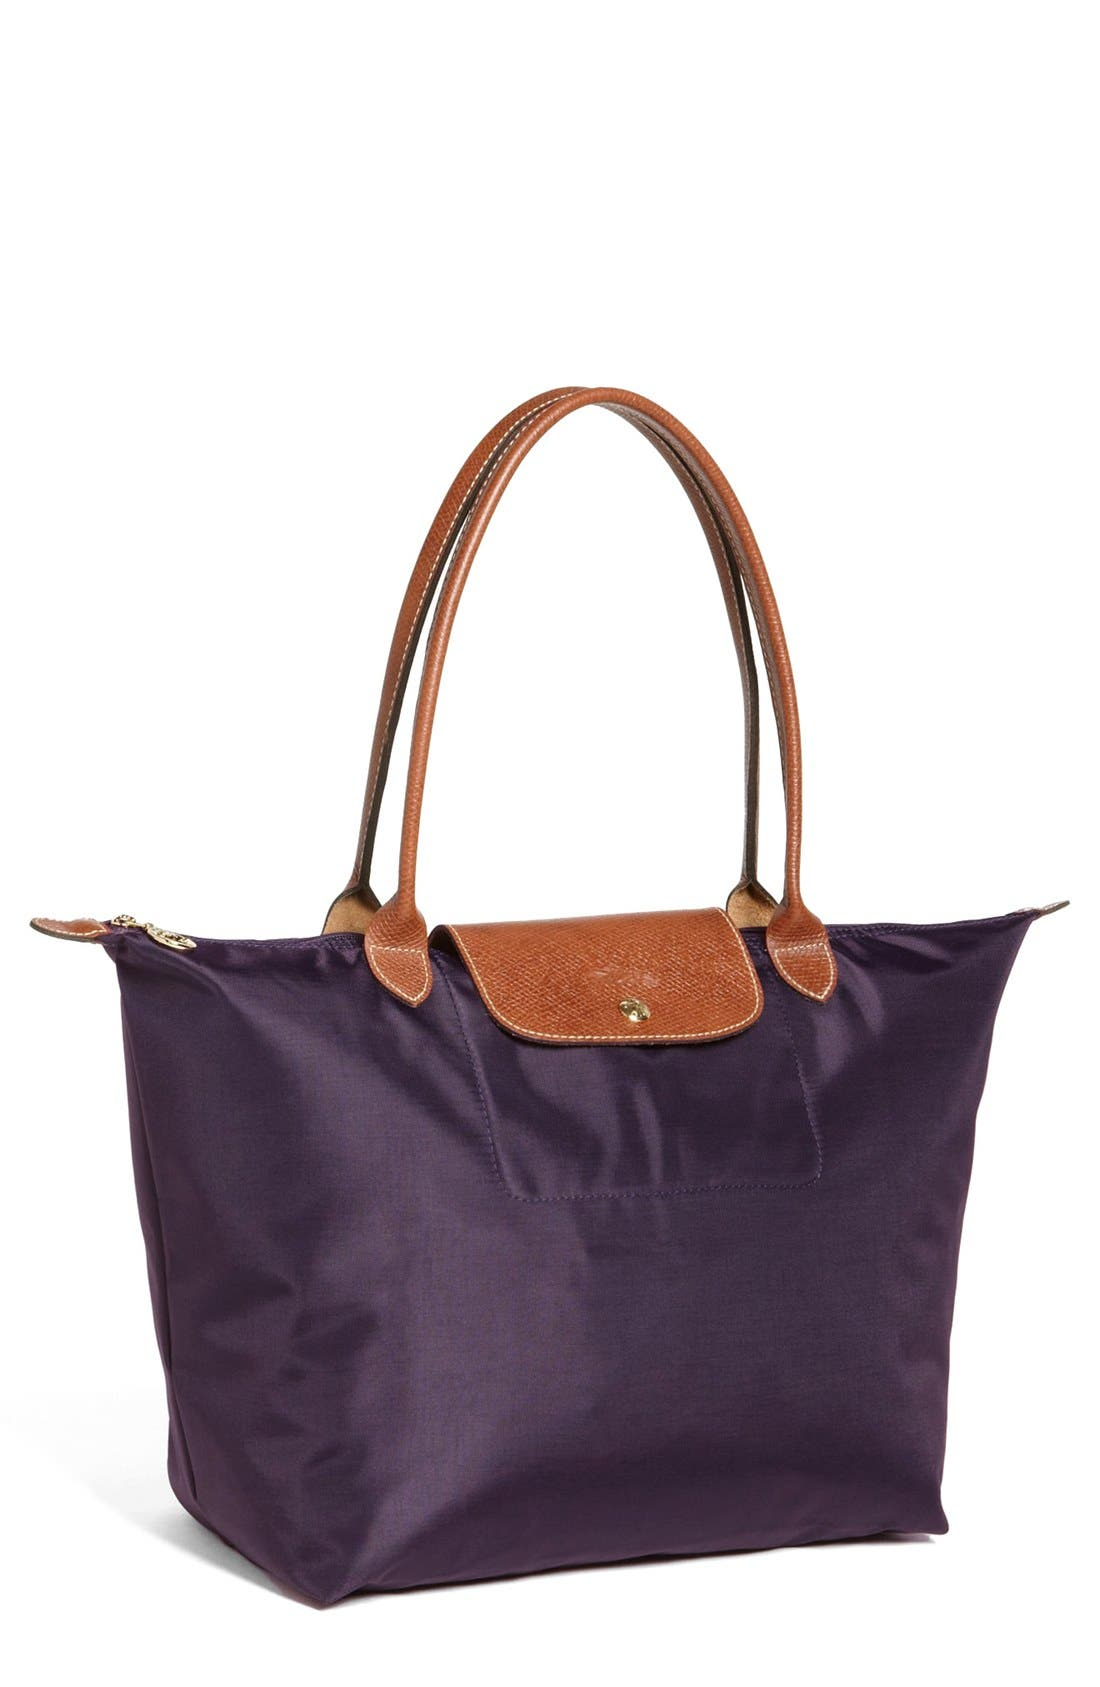 Longchamp 'Large Le Pliage' Nylon Tote